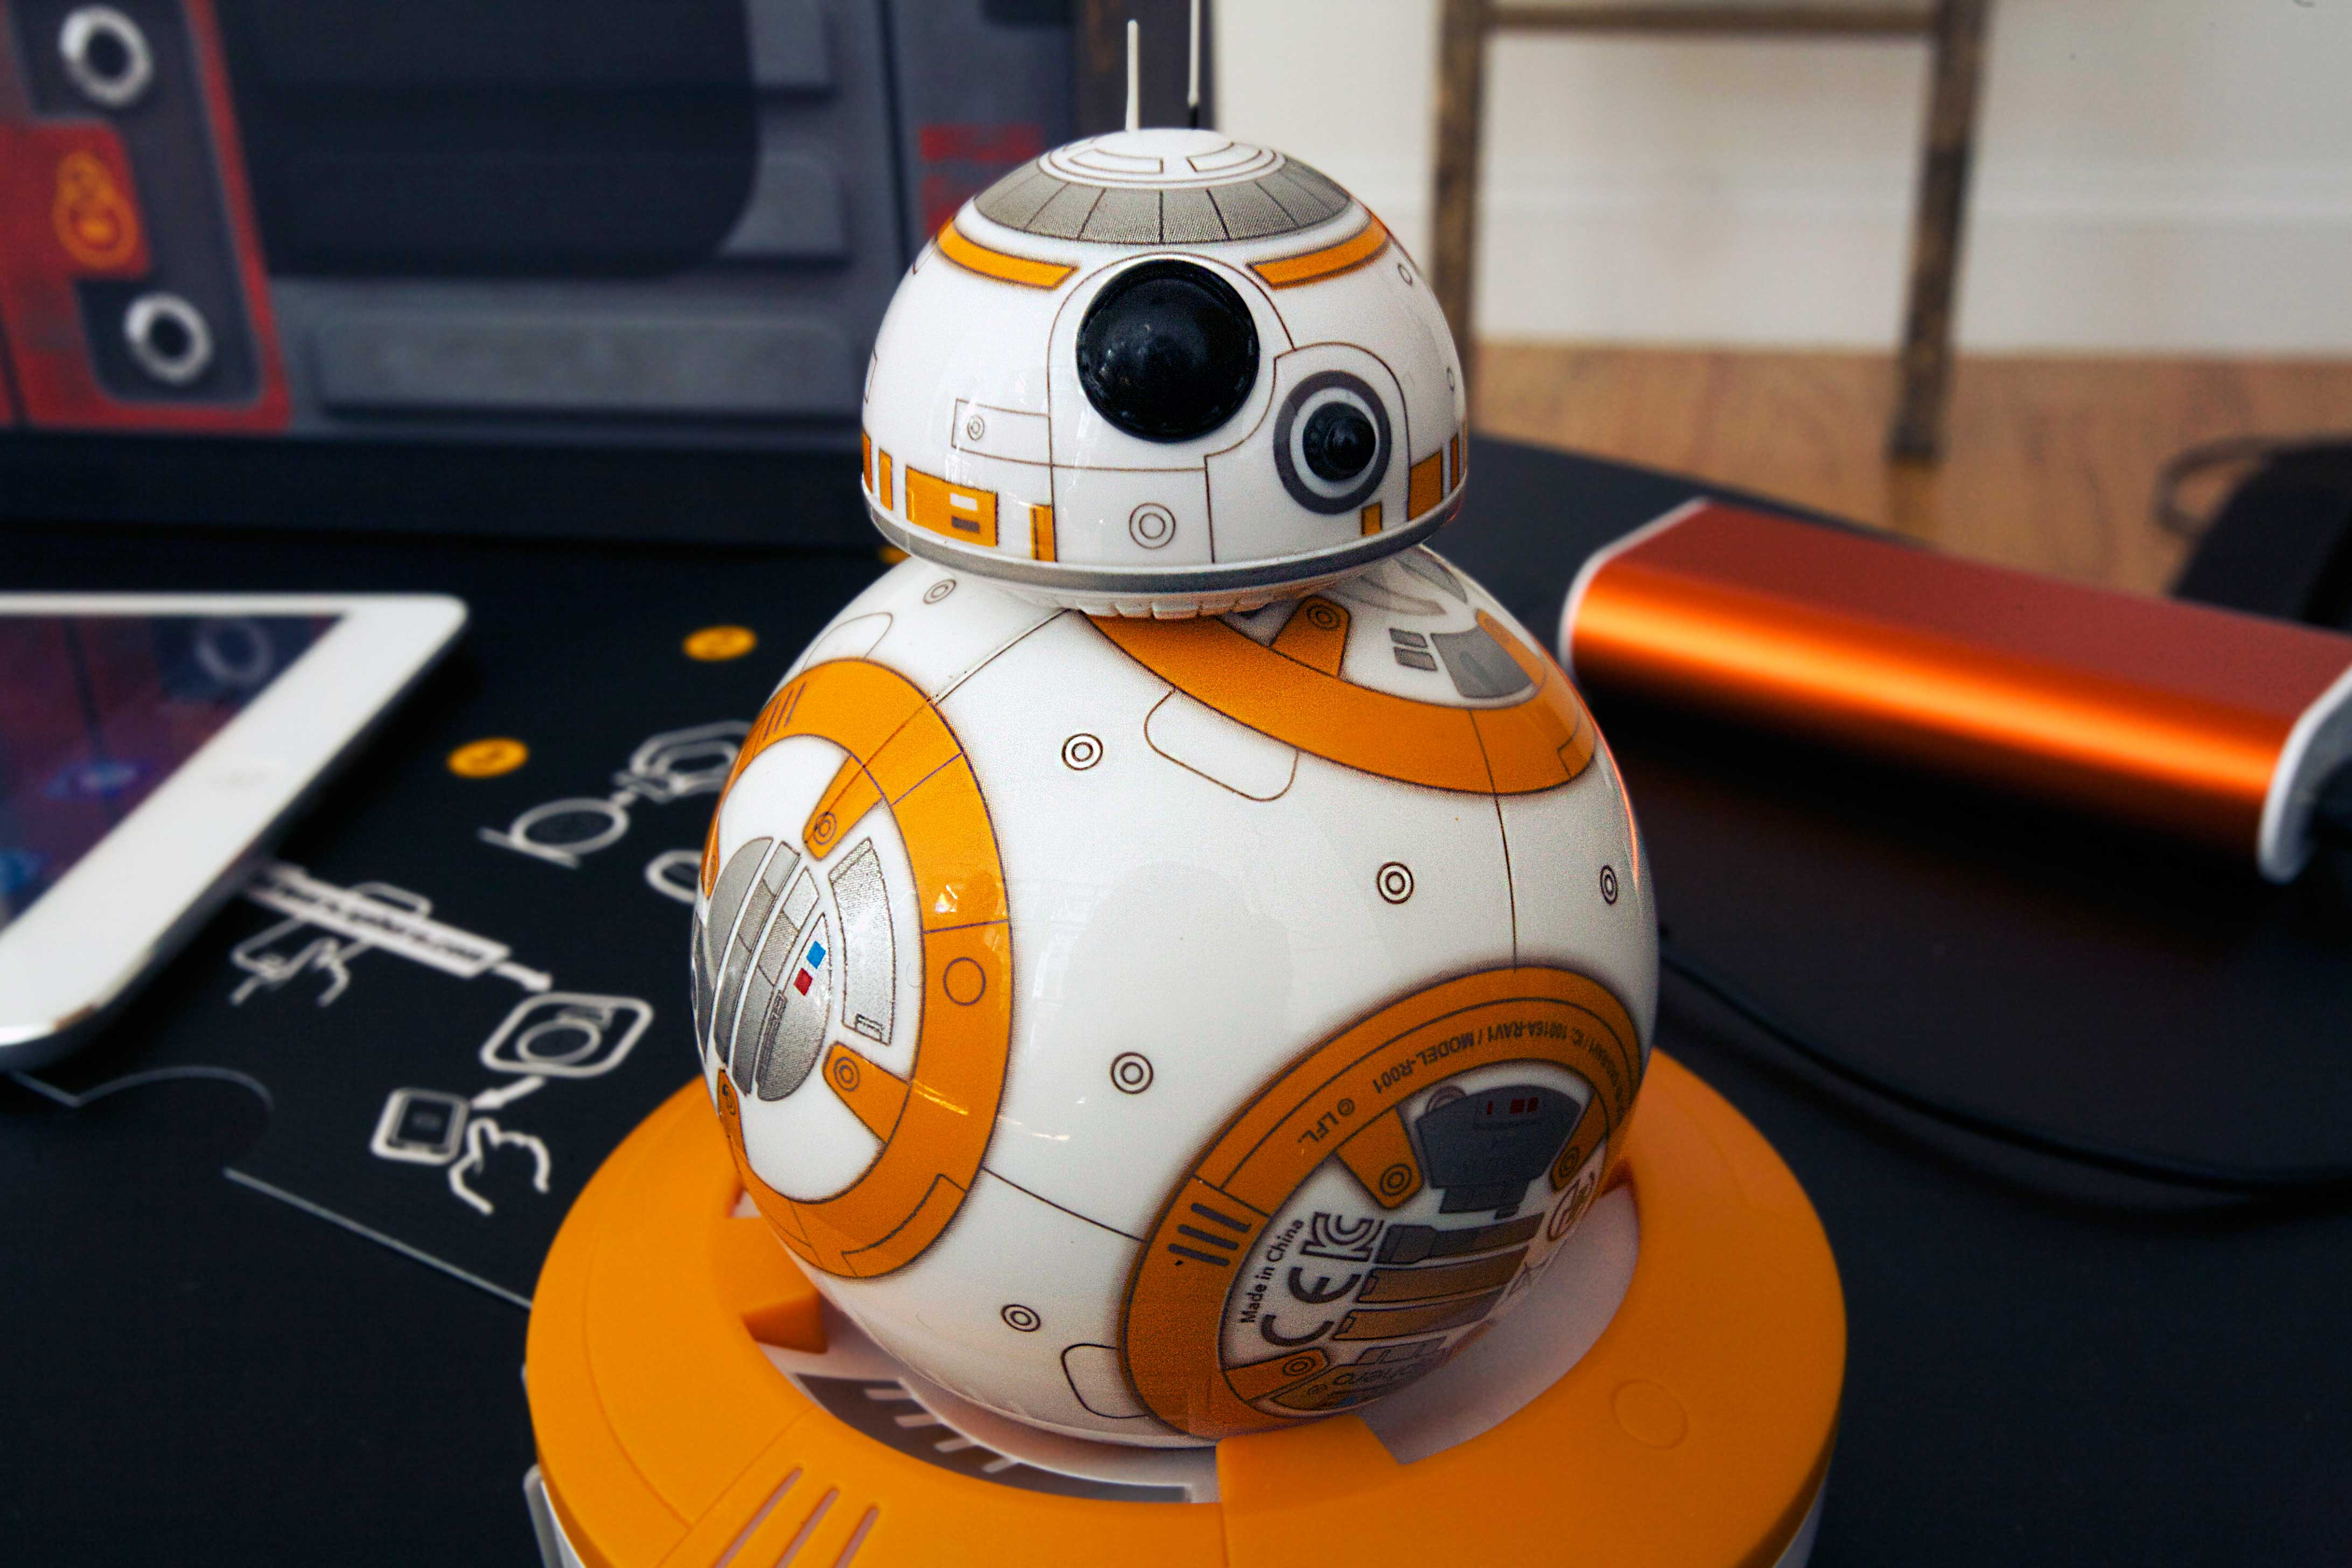 BB-8 on its charging stand.